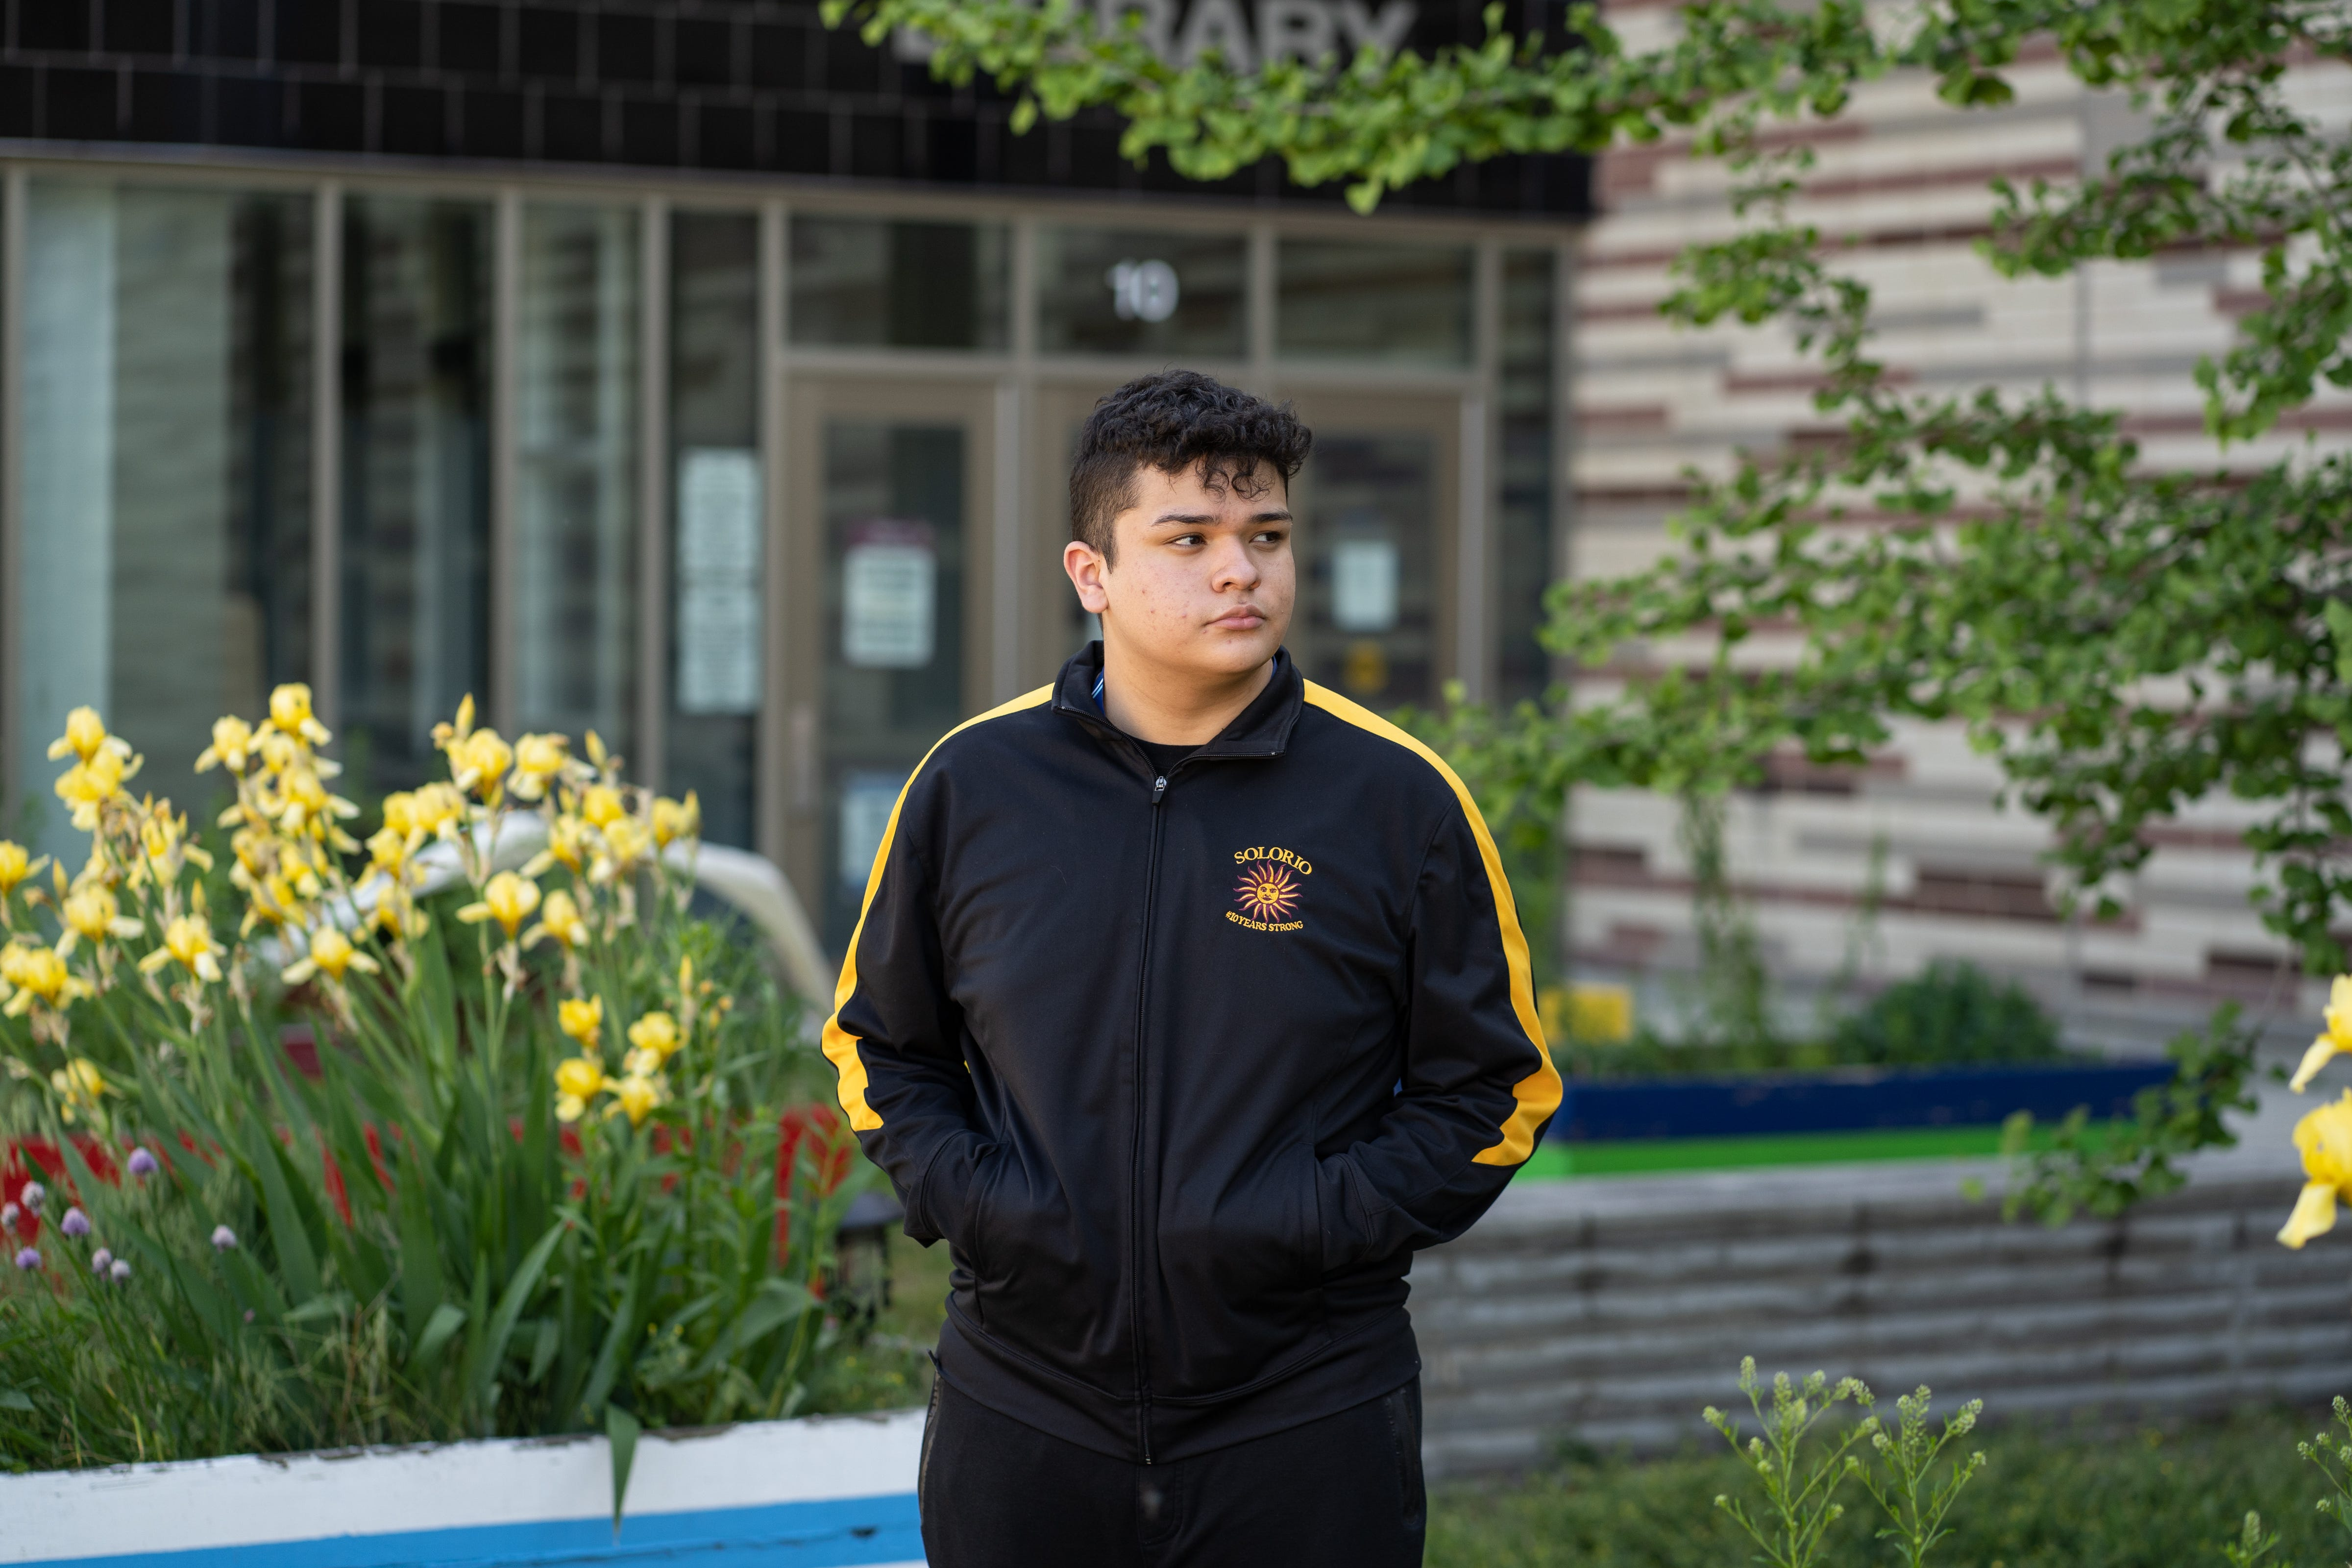 Leonel Gonzalez, a student at Solorio Academy High School, hopes to be the first in his family to go to college.